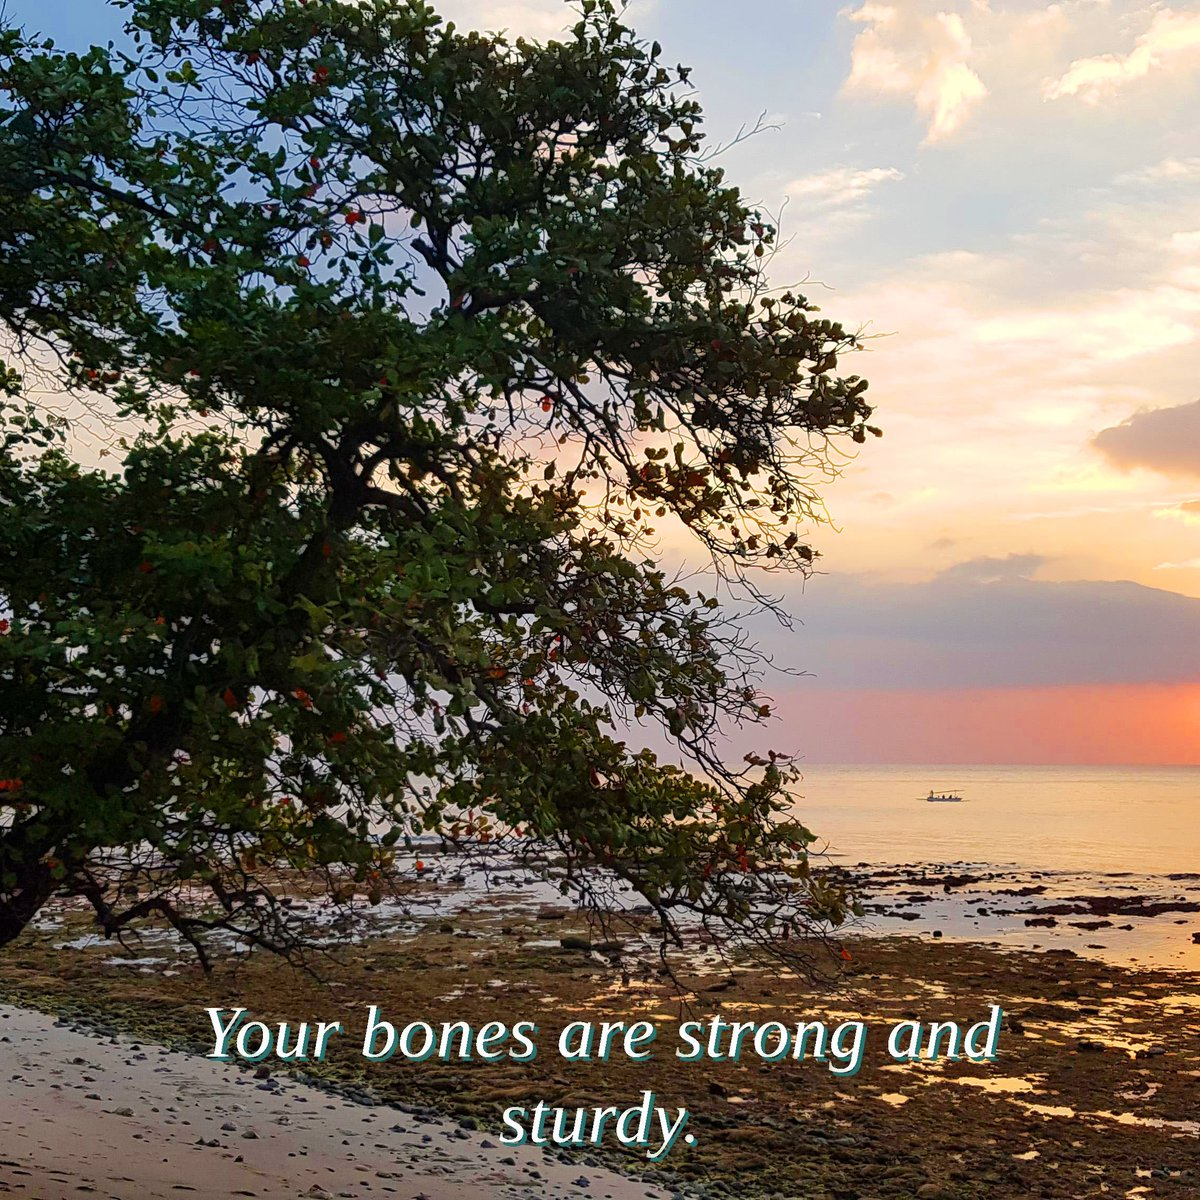 Your bones are strong and sturdy.  🌲Follow for daily affirmation photos and more🌲 🌲@leaftreeaffirmations🌲  #leaftree #leaftreeaffirmations #photo_forest_gold #treehugger #lonely_tree_love #treelover #naturediversity #writersofinstagram #positivethoughts https://t.co/nSVbd8a9ZX